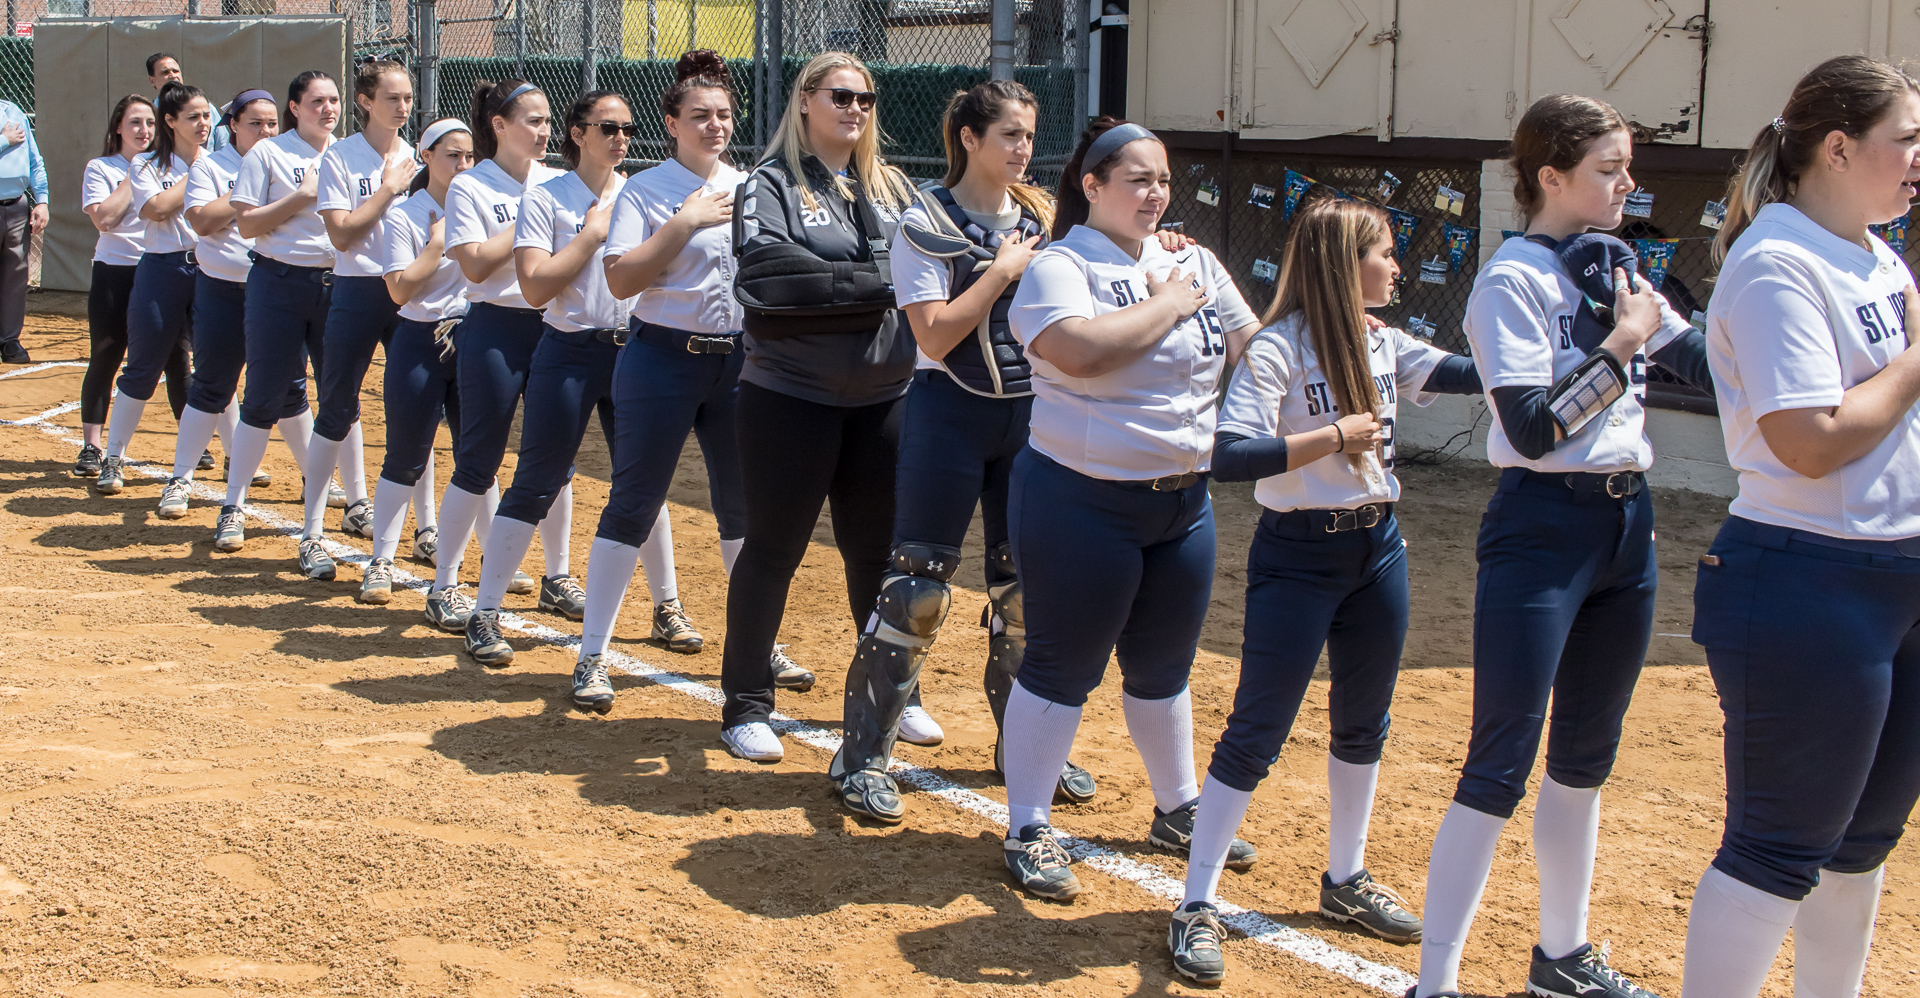 Softball Set to Compete in First Skyline Championship; No. 6 Bears Face No. 3 Farmingdale on Wednesday